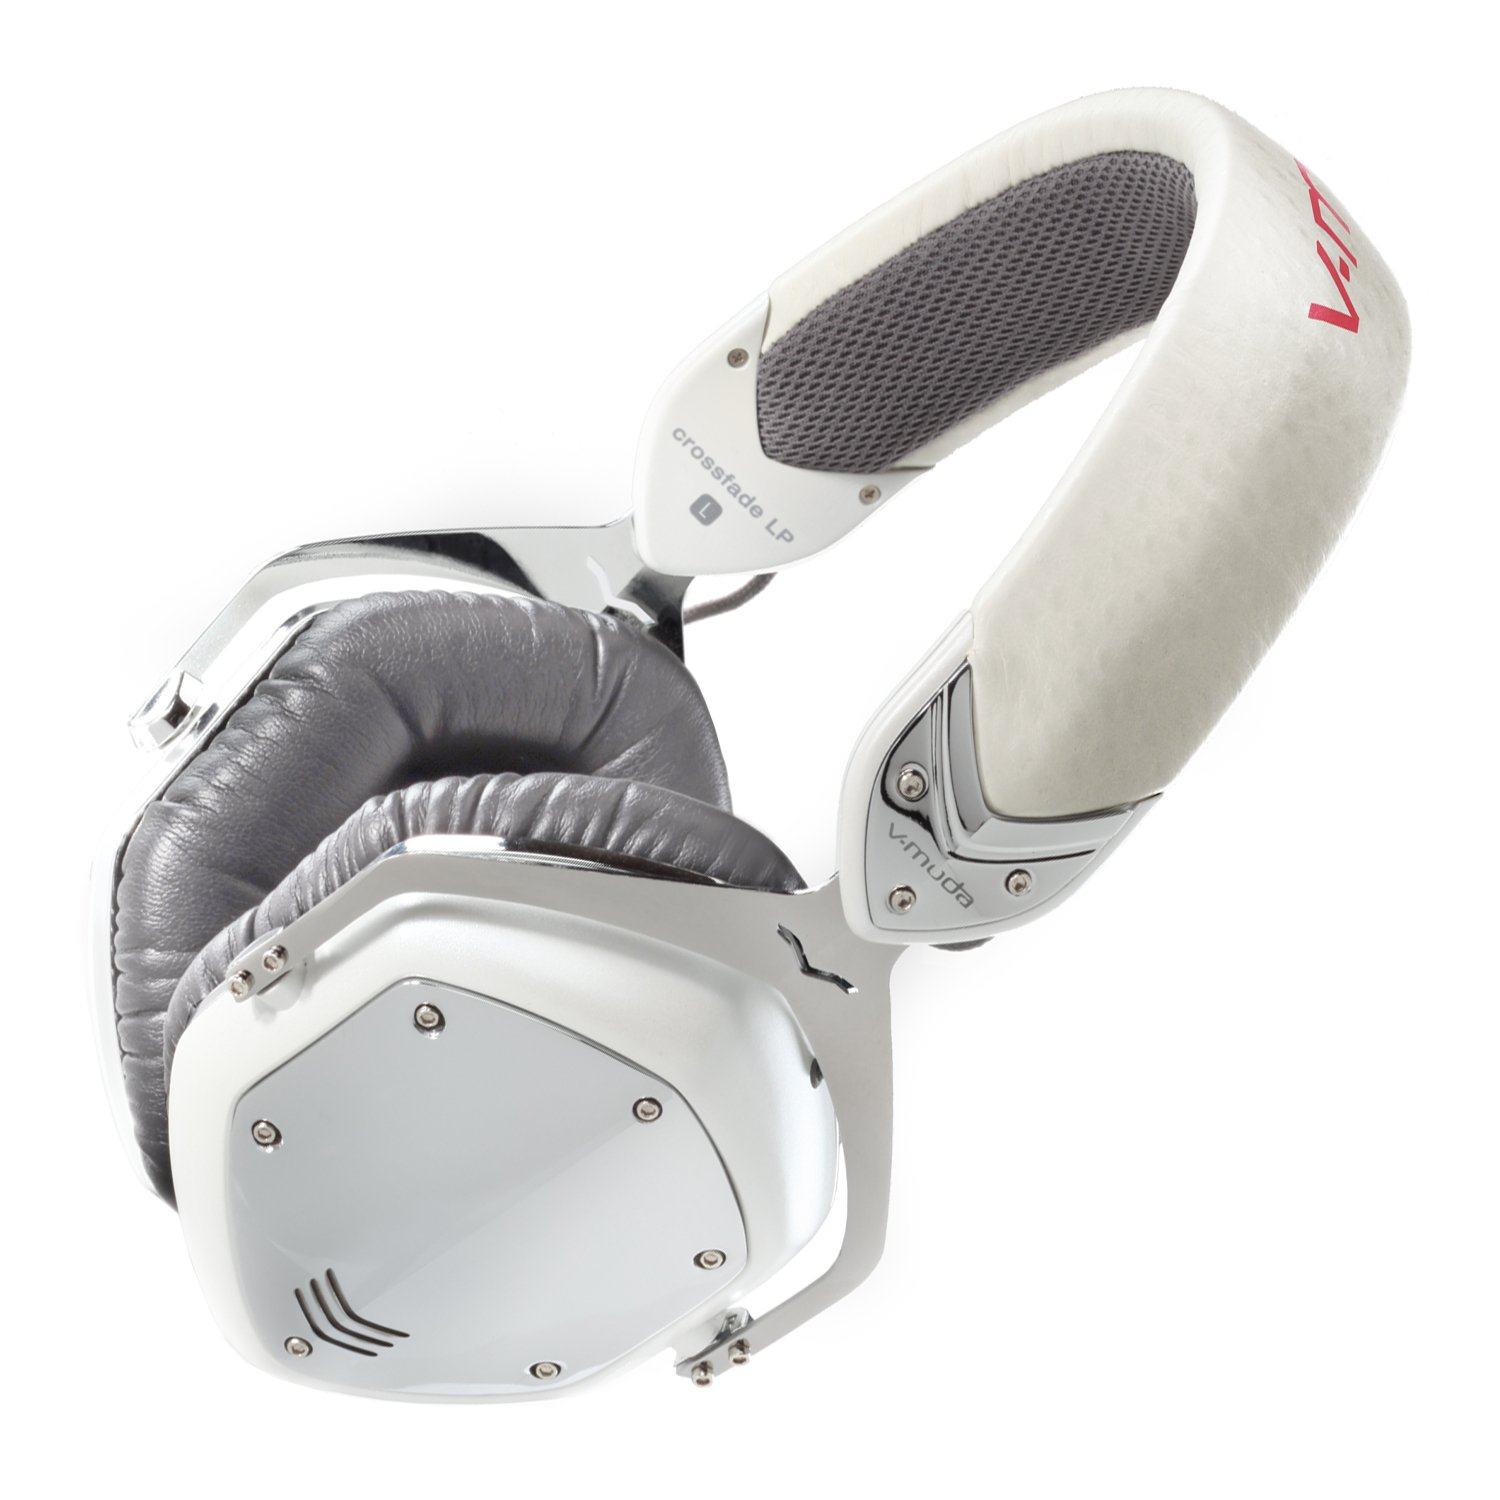 V-MODA Crossfade LP Over-Ear Noise-Isolating Metal Headphone ($69.99)